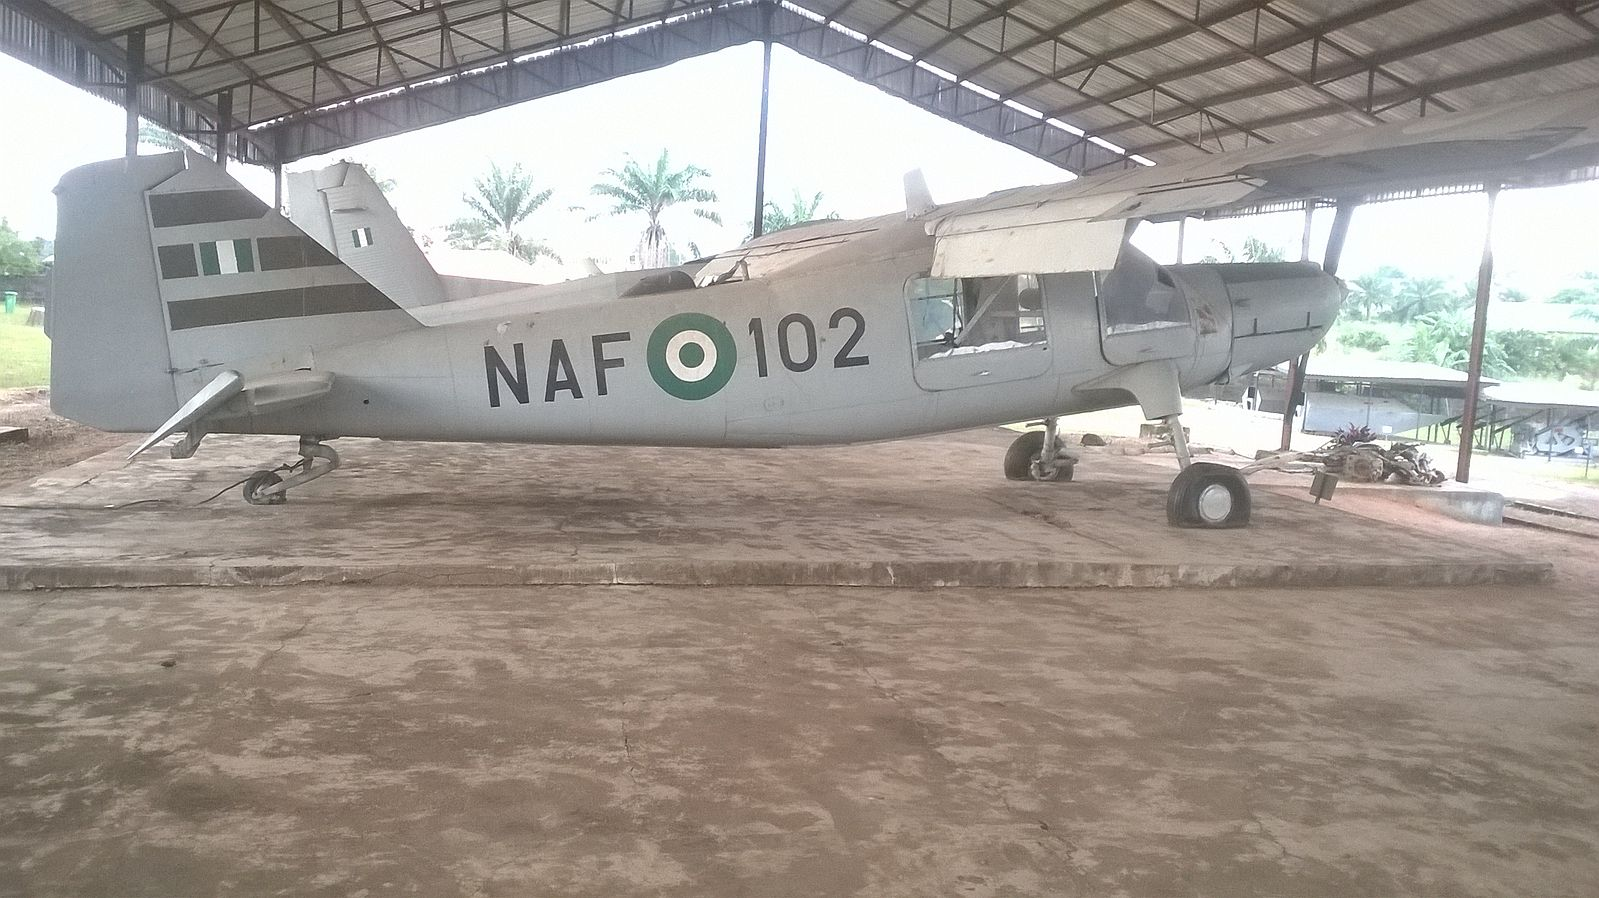 One of Nigerian Gov. Airforce War planes being captured and recovered after the Biafran War in Nigeria Presently located at the National War Museum, Umuahia, Abia State, Nigeria